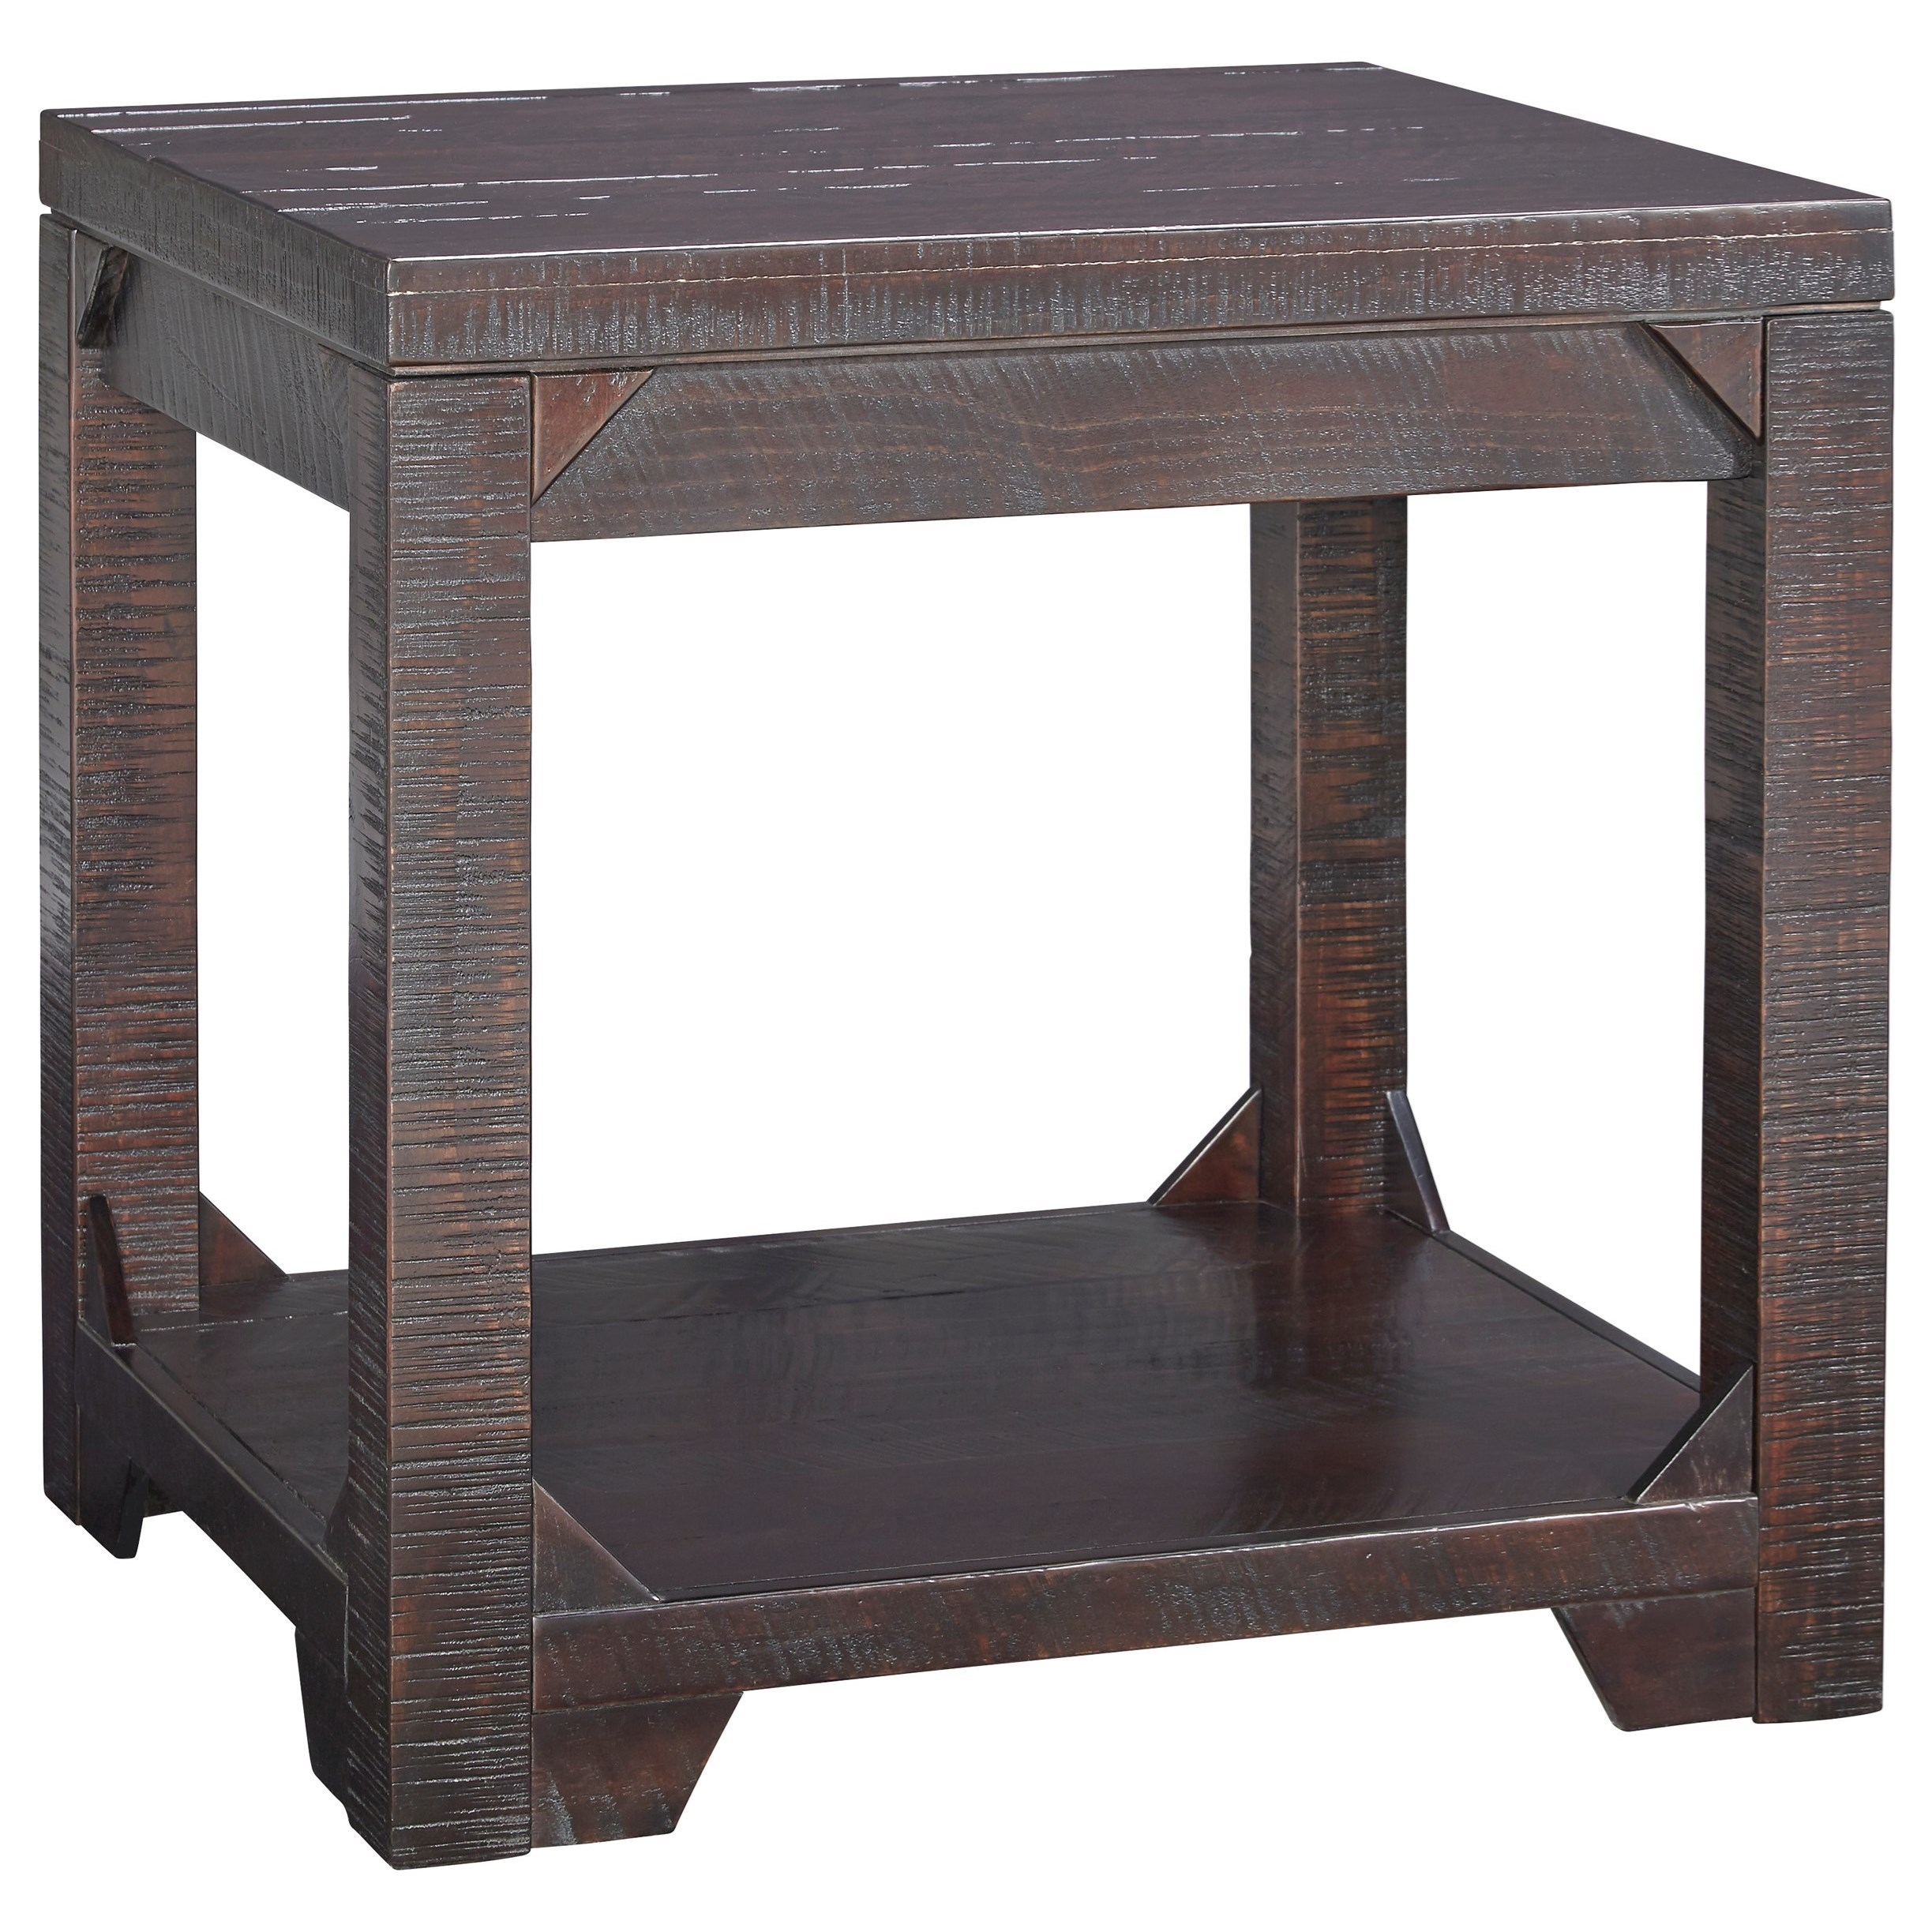 Signature Design by Ashley Rogness Rectangular End Table - Item Number: T745-3